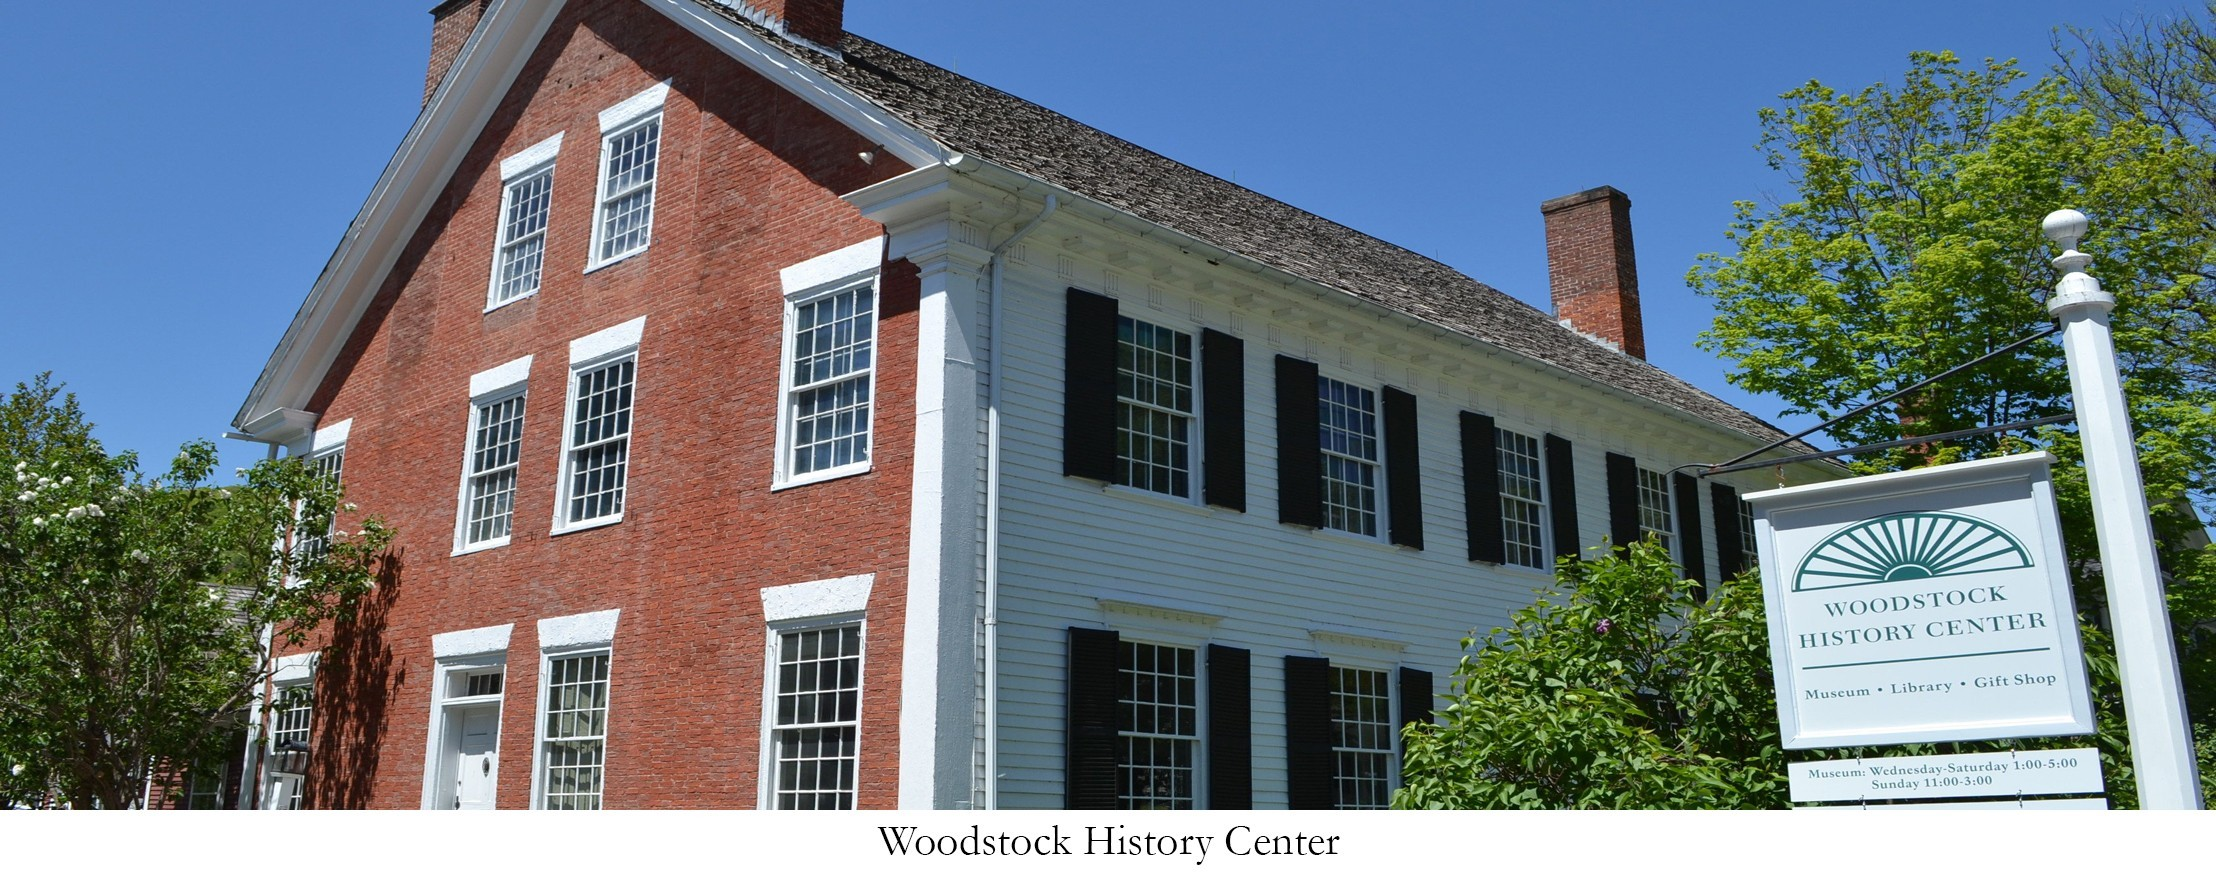 Woodstock History Center